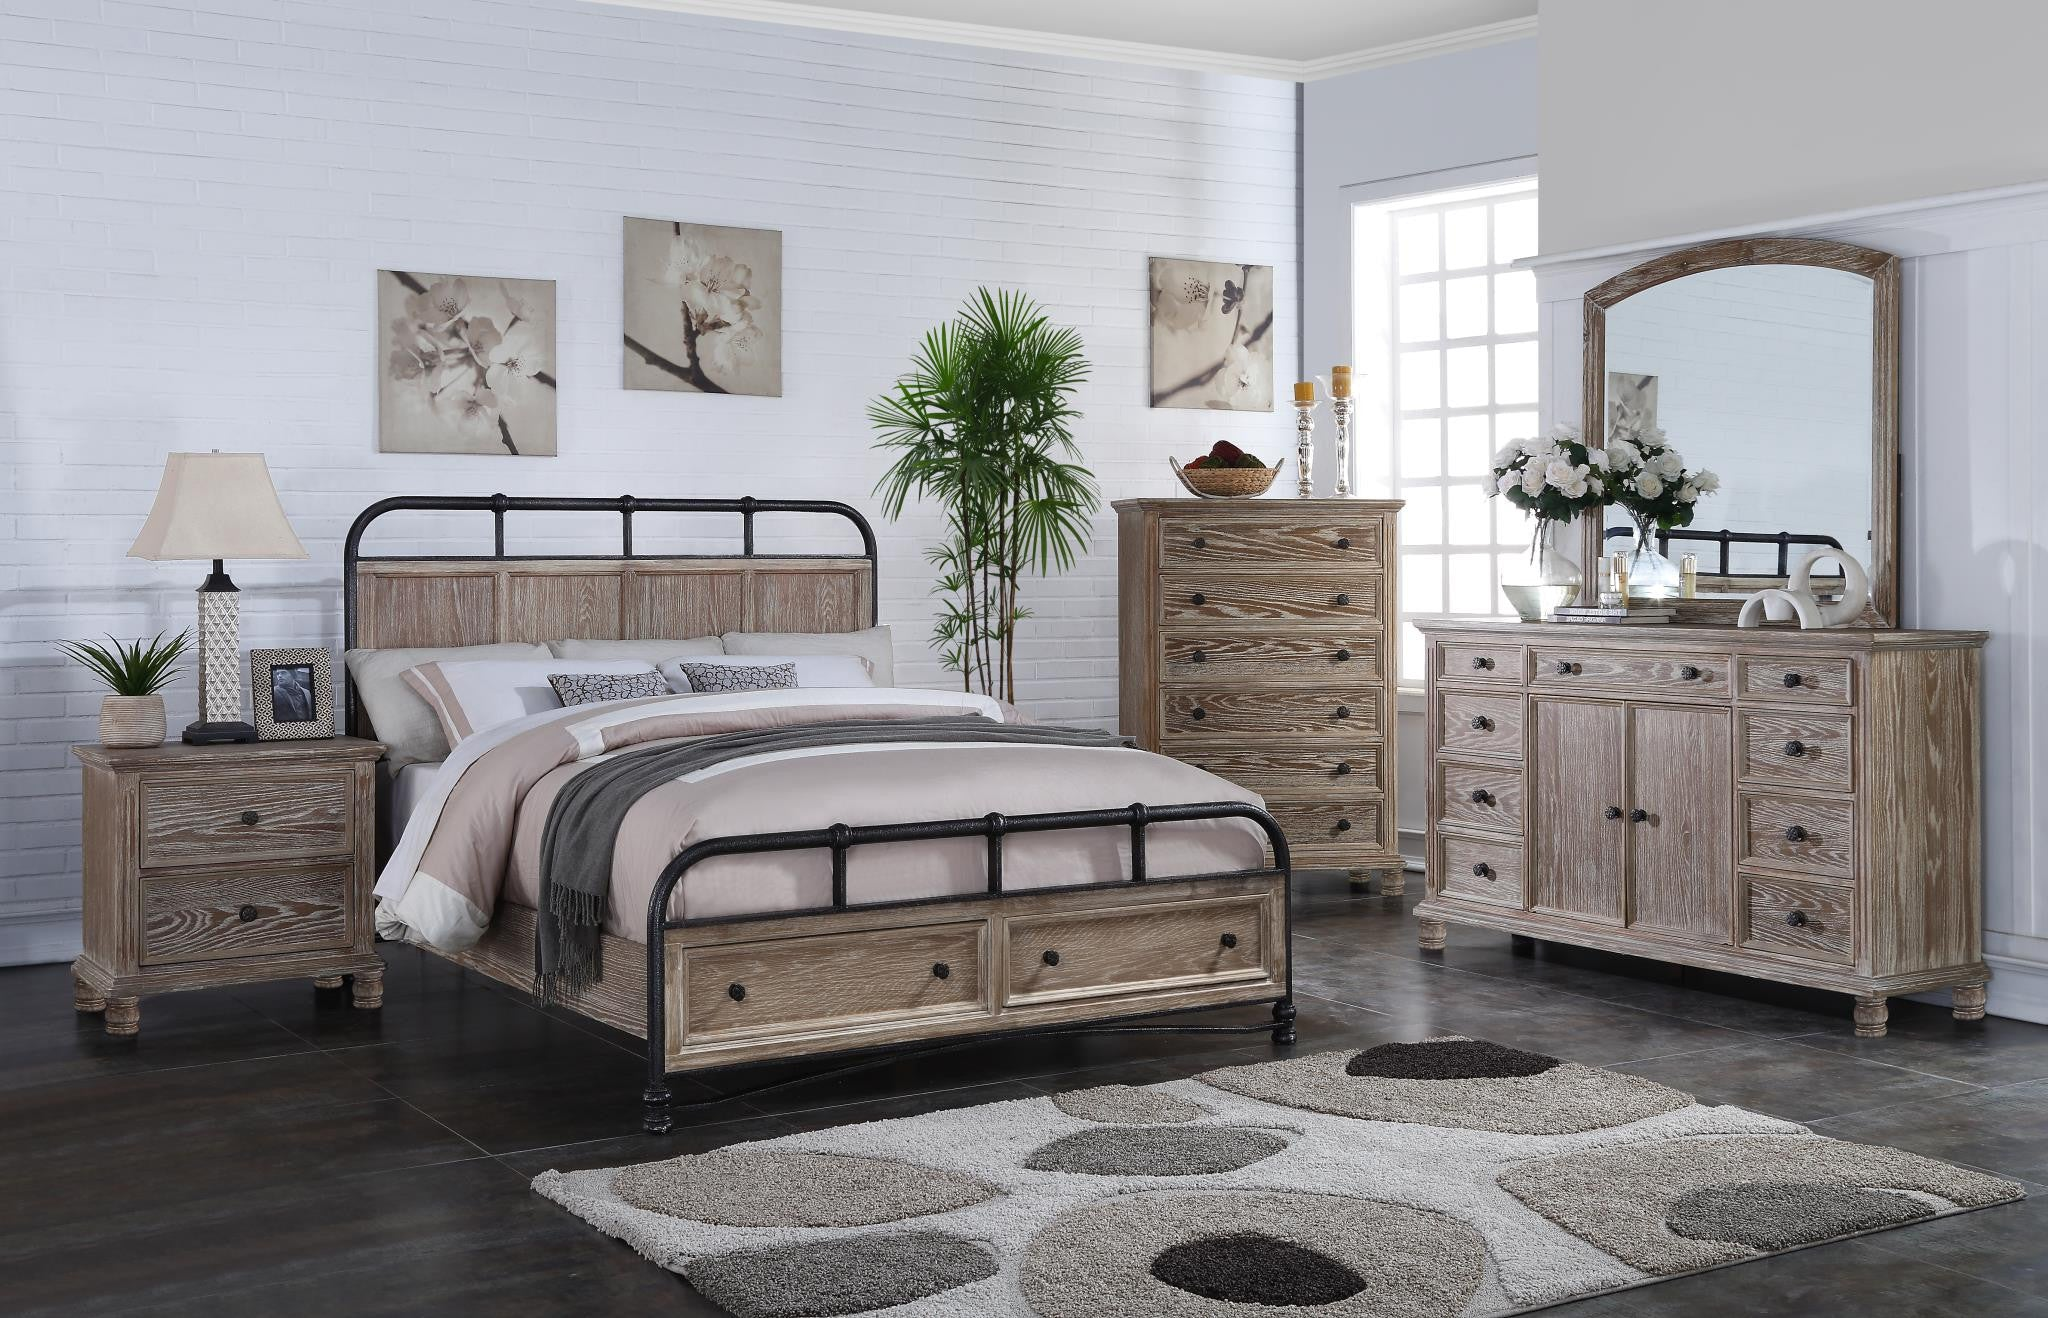 La Salla Bedroom Set